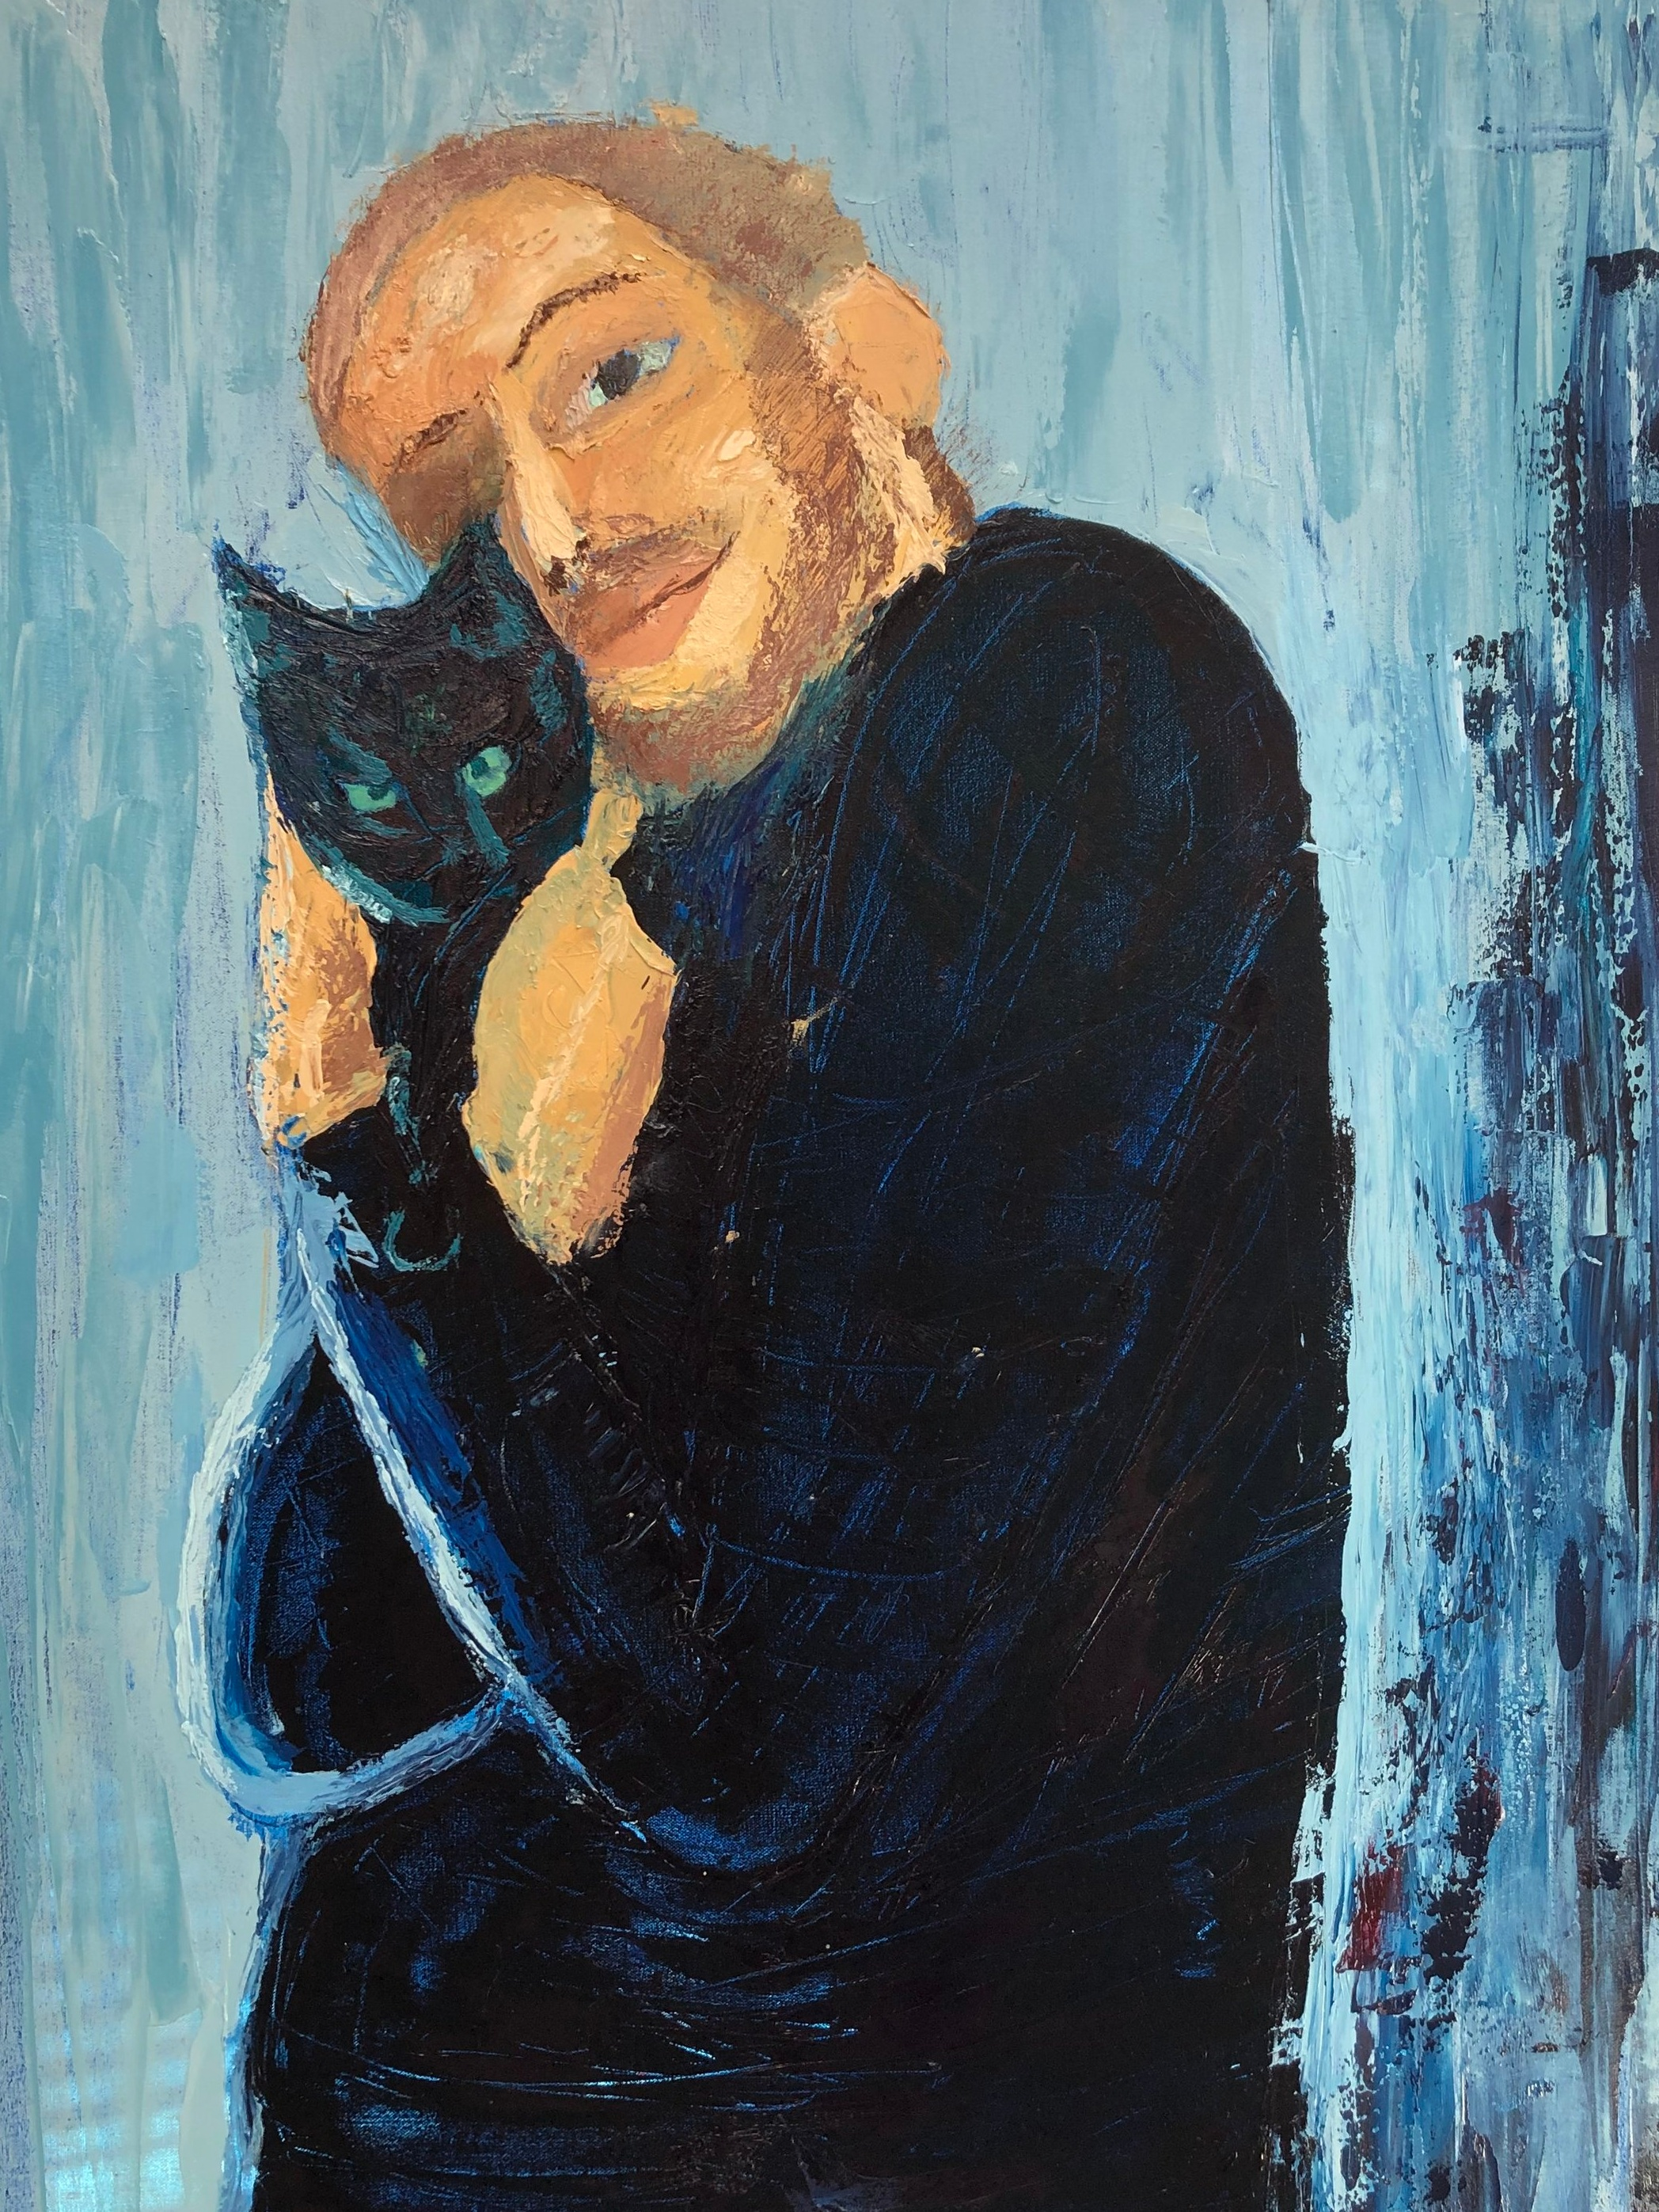 James  Oil on Canvas  36 inches x 46 inches